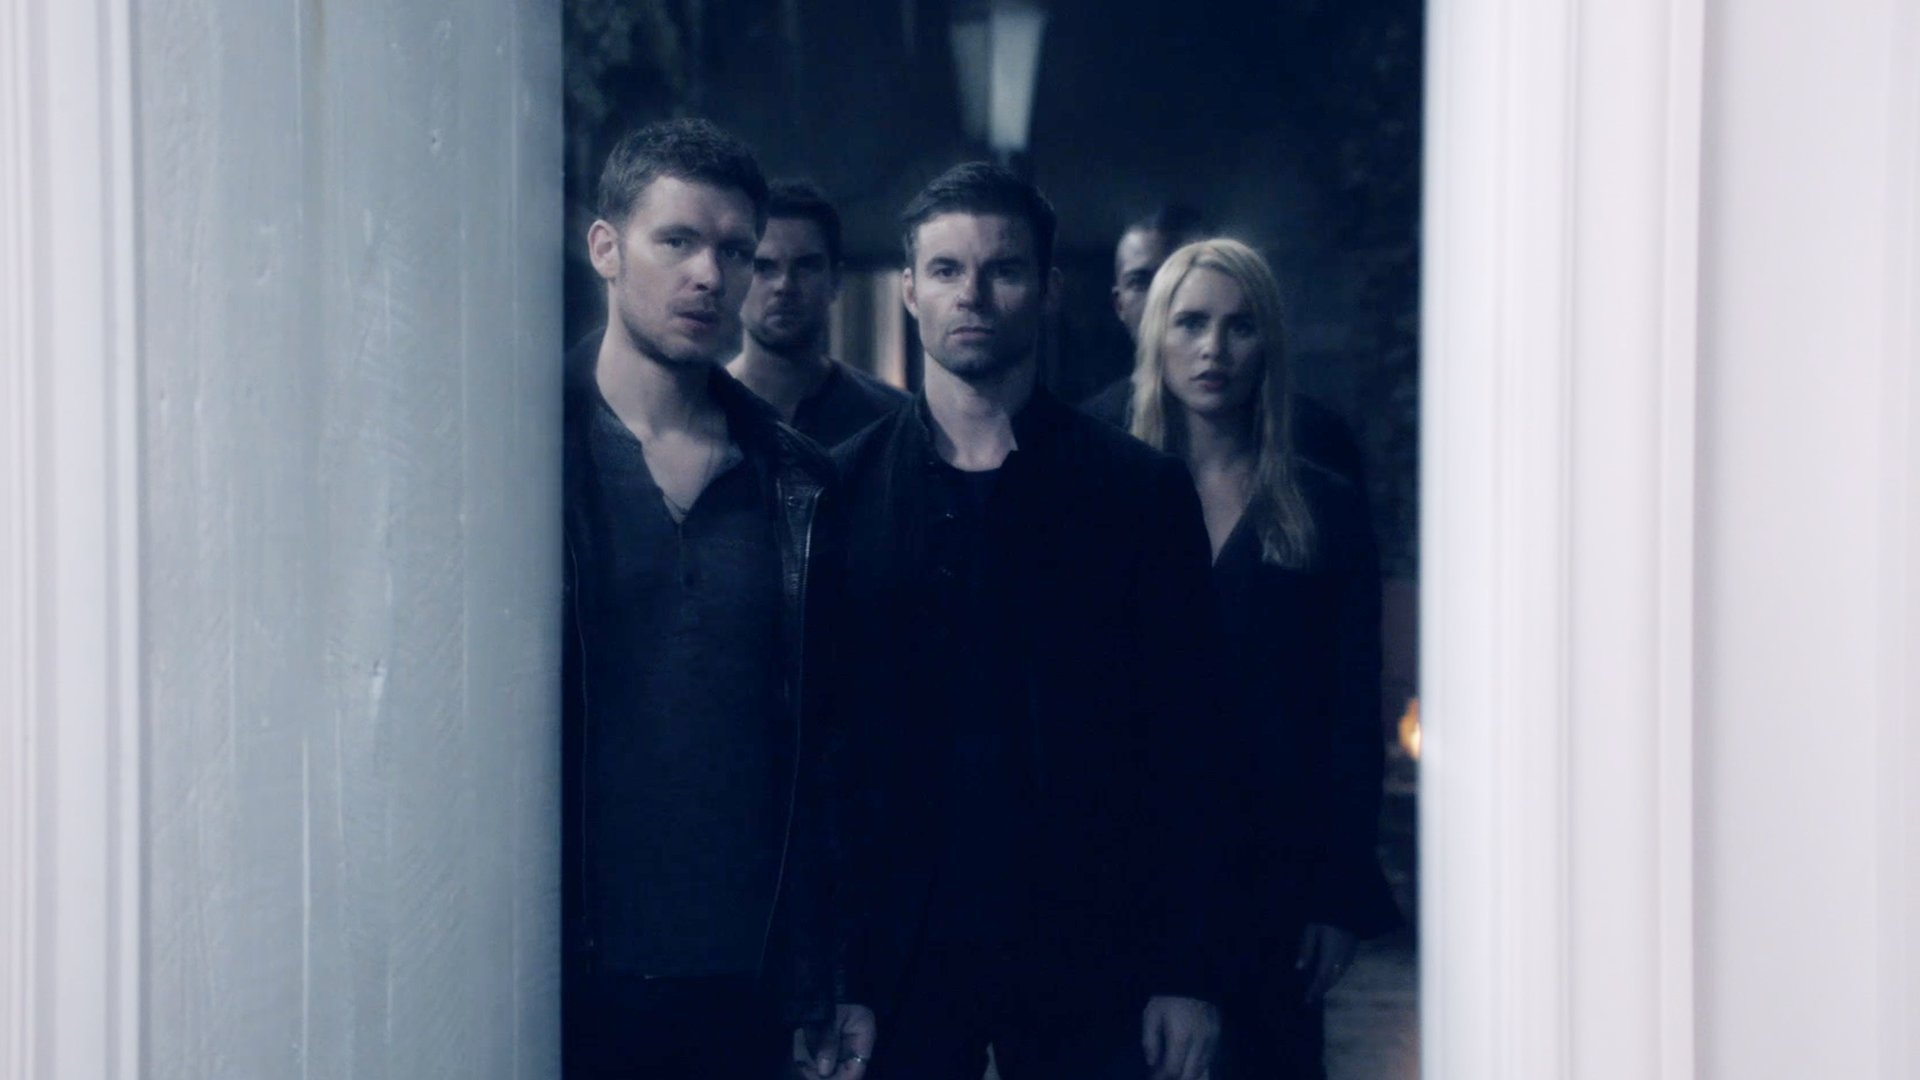 The first vampires. The last season. #TheOriginals returns Wednesday, April 18 at 9/8c on The CW. https://t.co/rPiirx4tNR